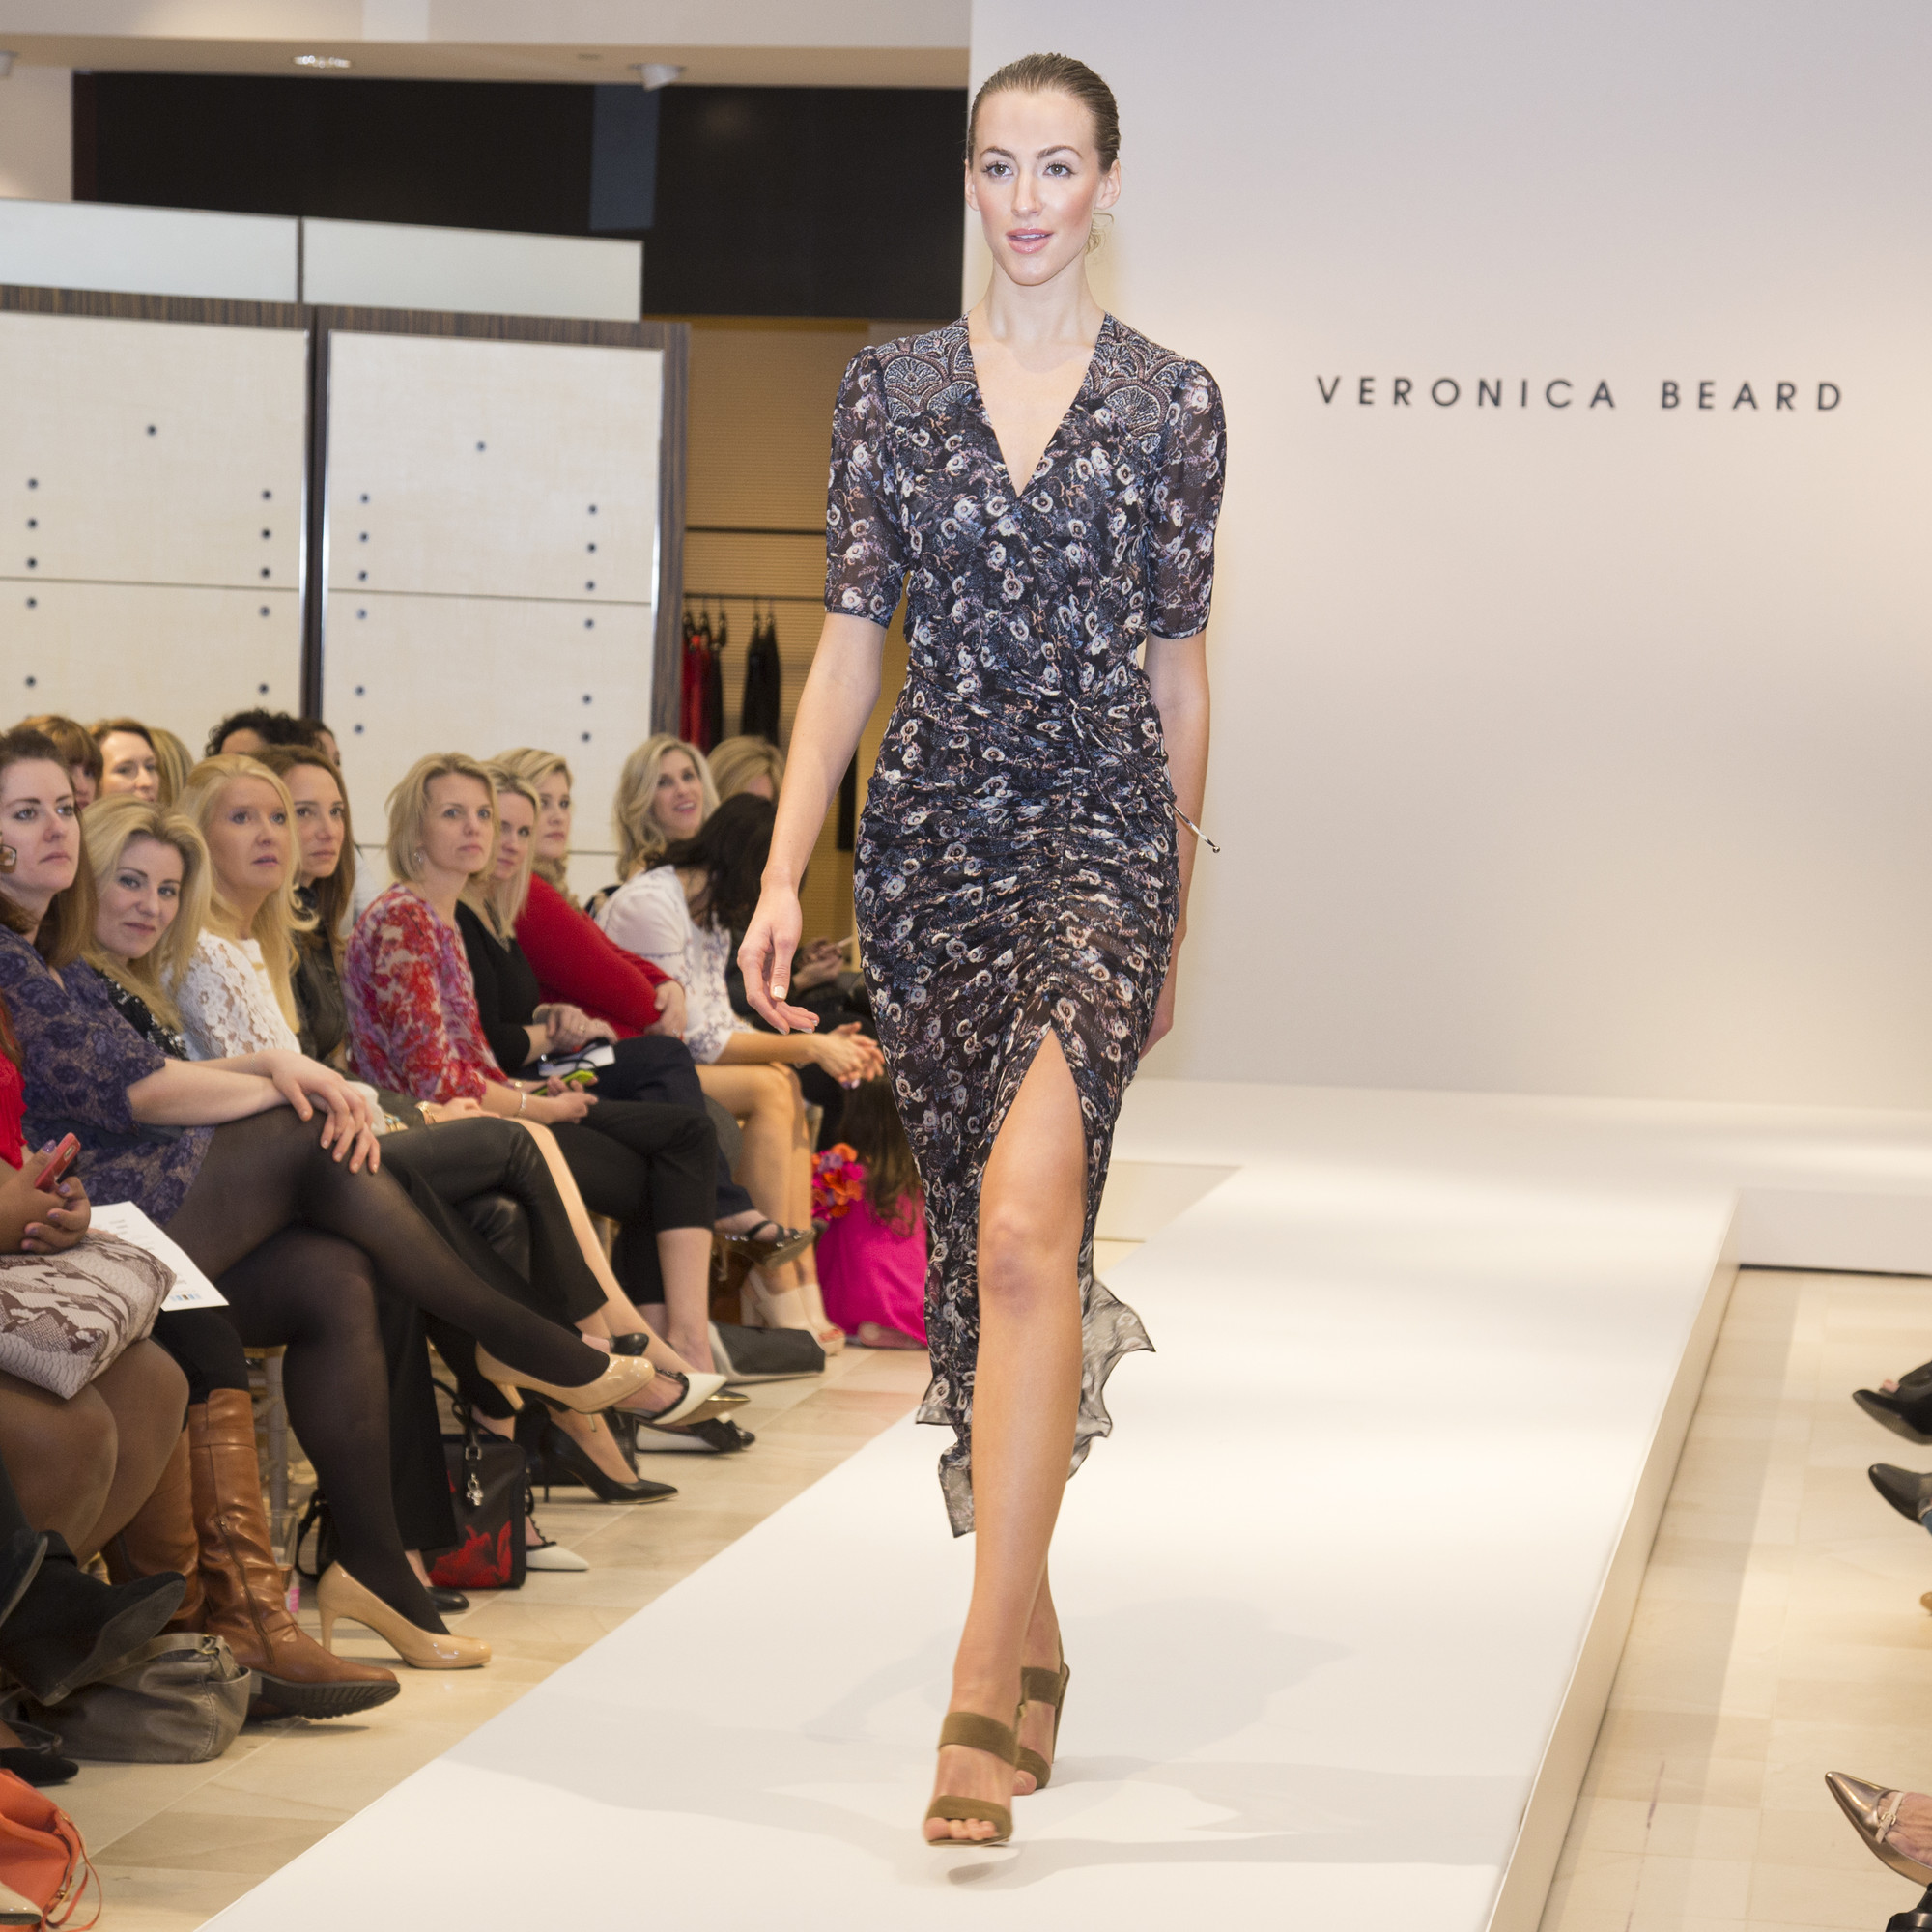 Veronica Beard Mariposa Dress Runway